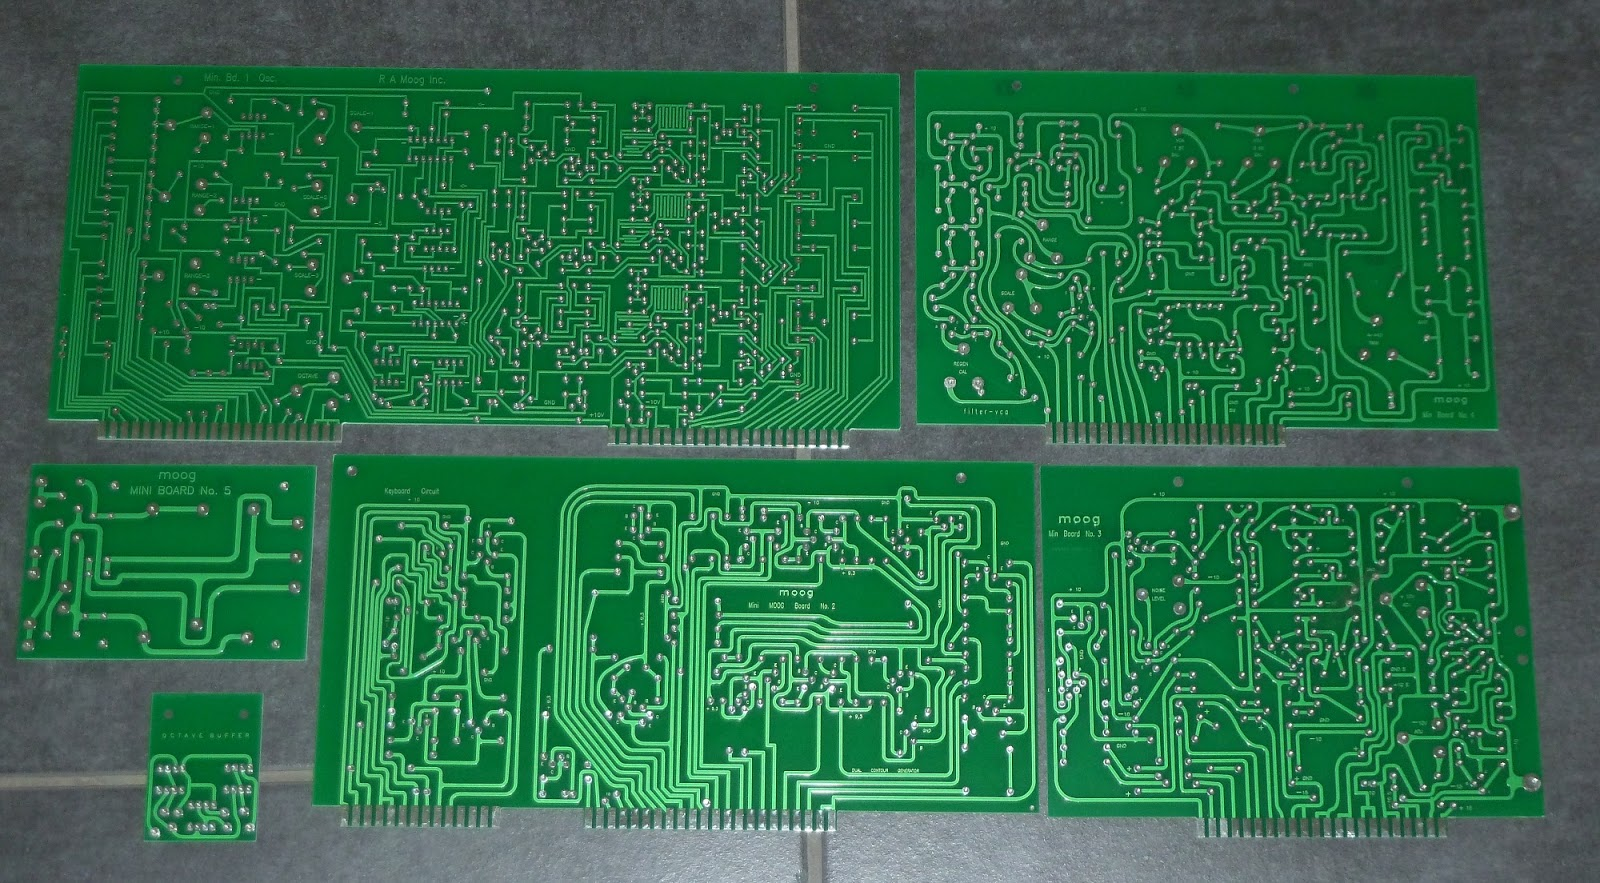 Inaptly Crafted Minimoog Replica Top View Of The Completed Circuit Board Waiting To Be Mounted On However Theres Another Shipment Arriving Later This Day Switches Card Edge Connectors And Some Other Items From Digikey